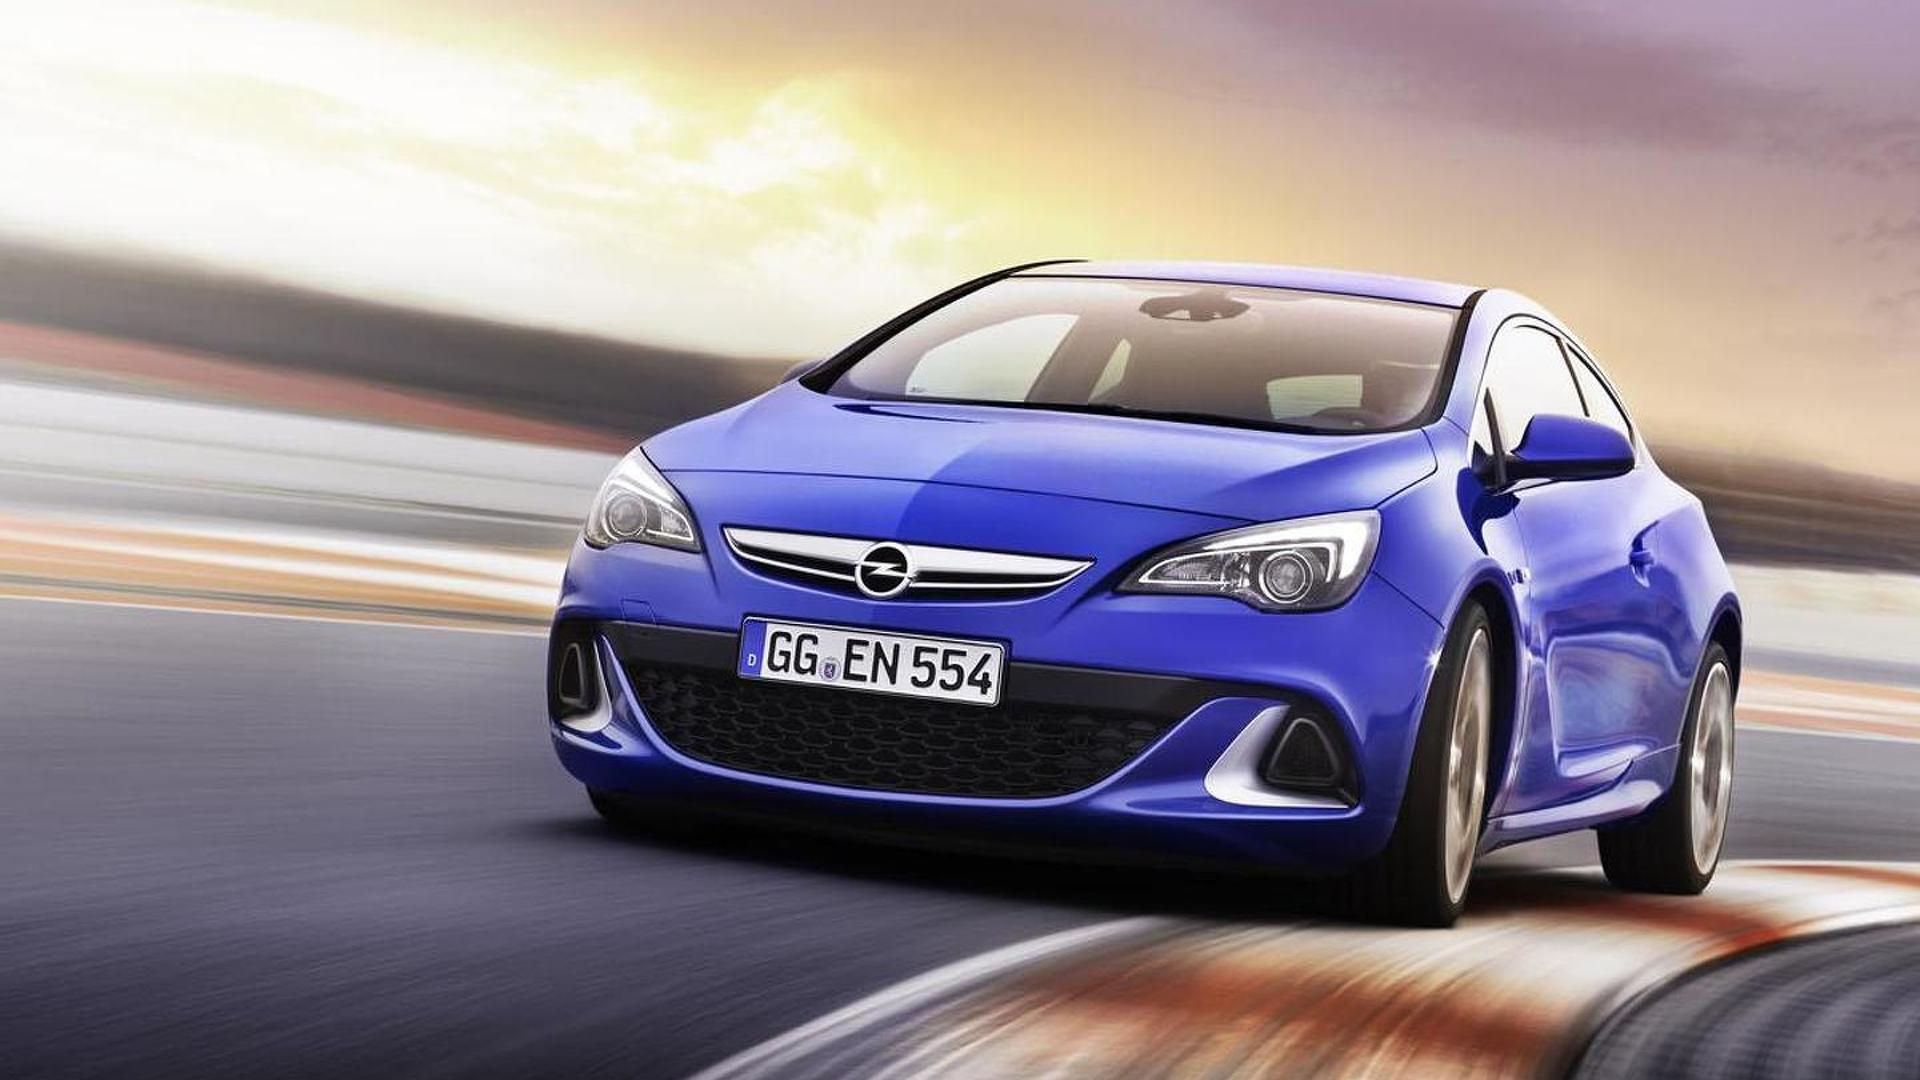 New Opel Astra OPC priced and spec'd - new promo released [video]